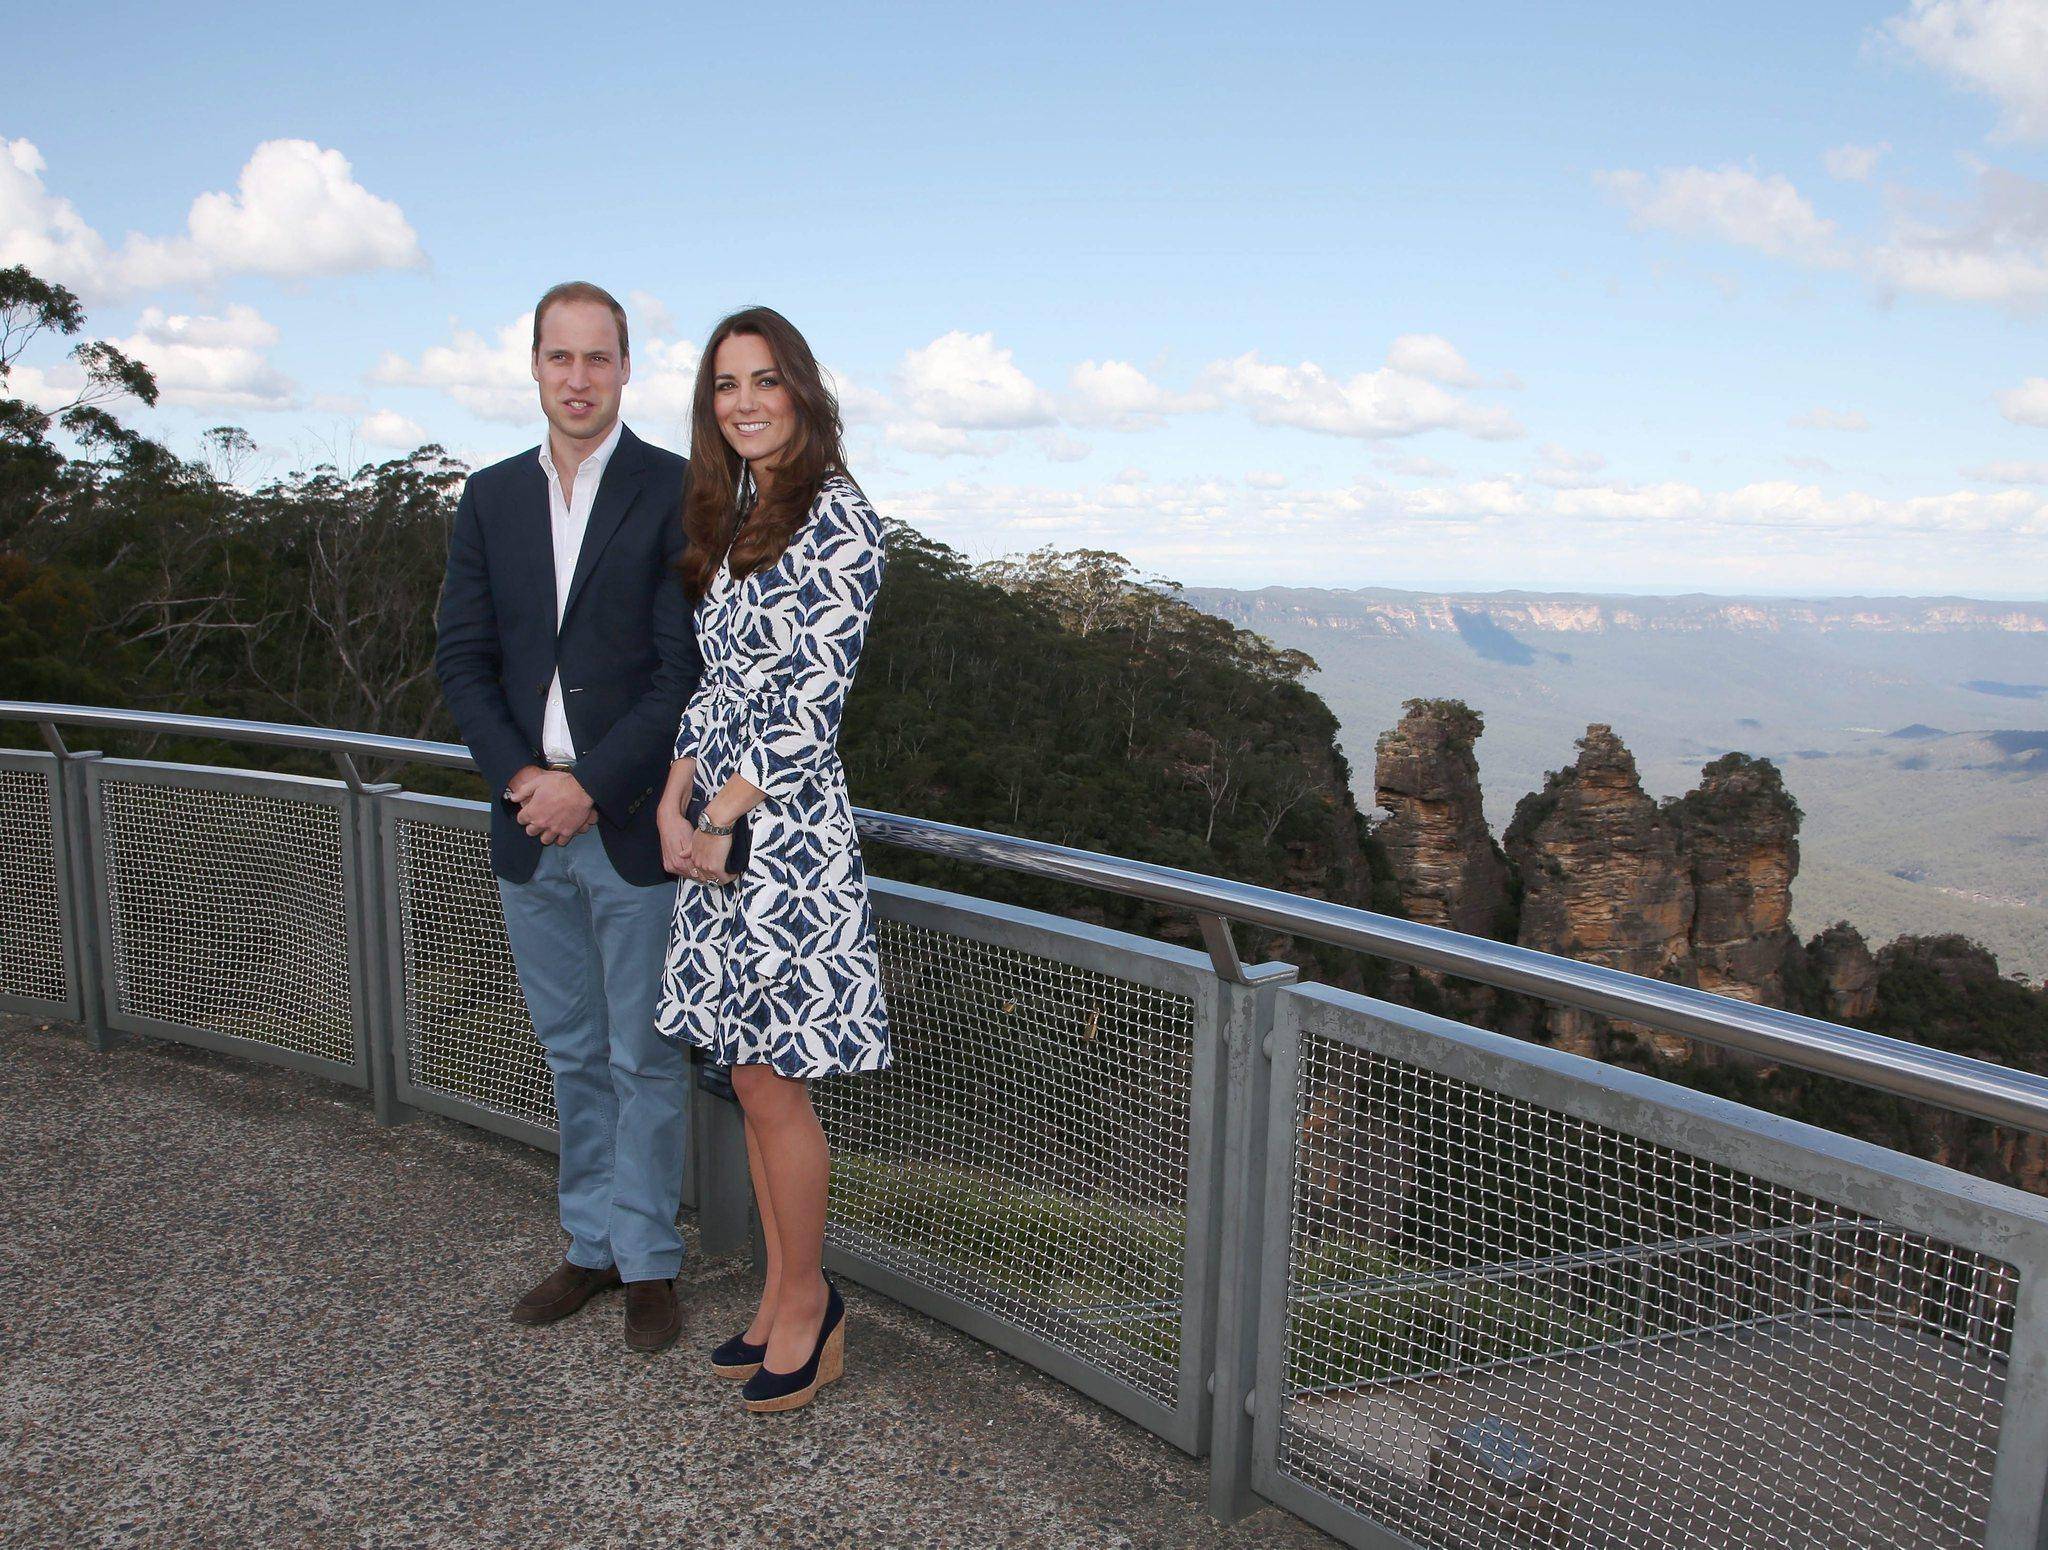 The Duke of Cambridge, Britain's Prince William, left, and his wife, the Duchess of Cambridge, dressed in Diane von Furstenberg, pose in front of the Three Sisters rock formation in the Blue Mountains during a tour of Echo Point in Katoomba.